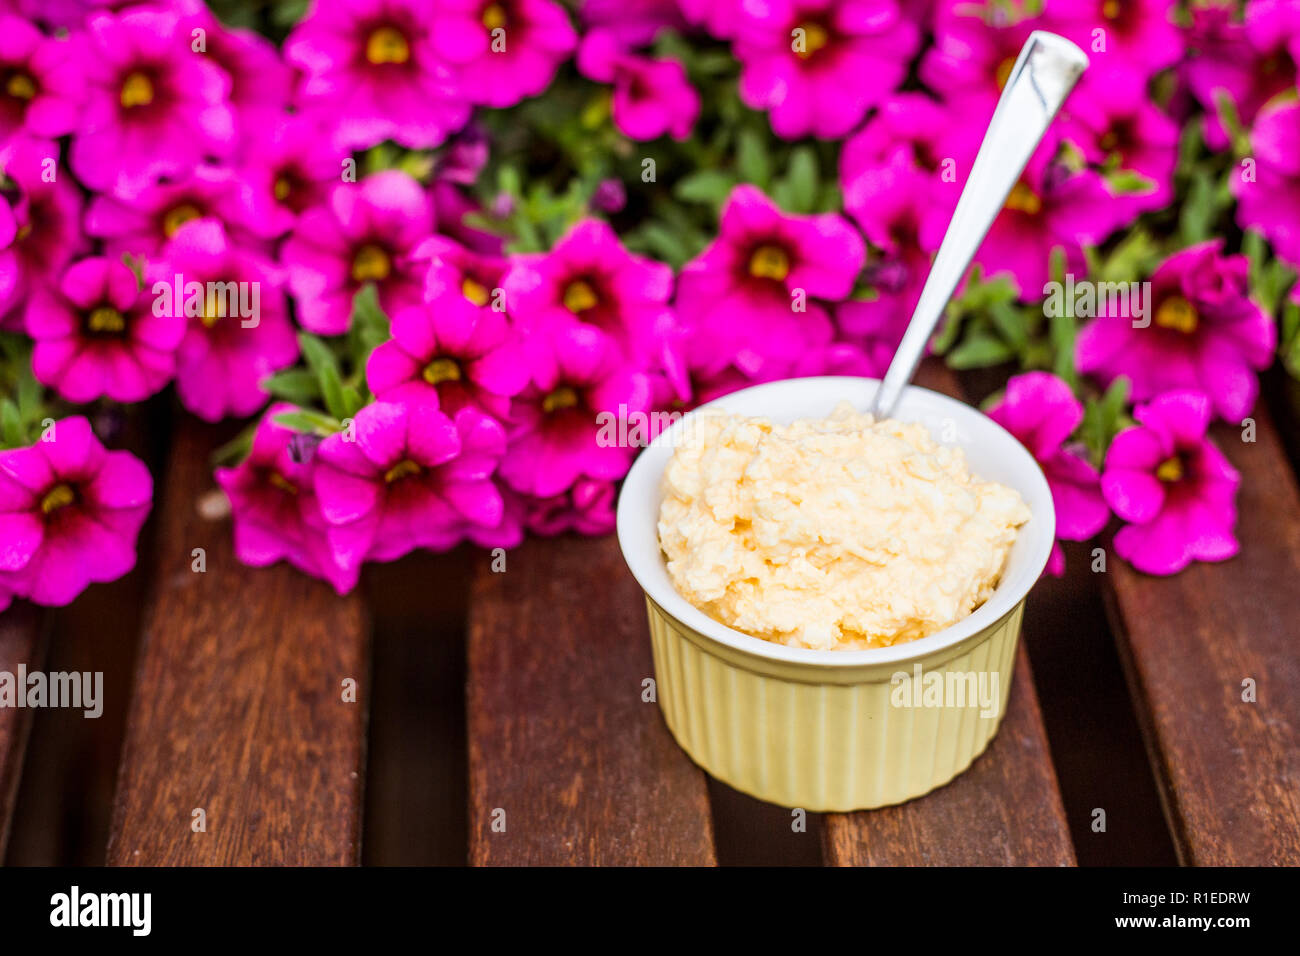 Yellow delicious egg and mayonnaise paste in yellow cup, spoon sticking out, breakfast snack recipe, pink flowers on the background, wooden base. - Stock Image